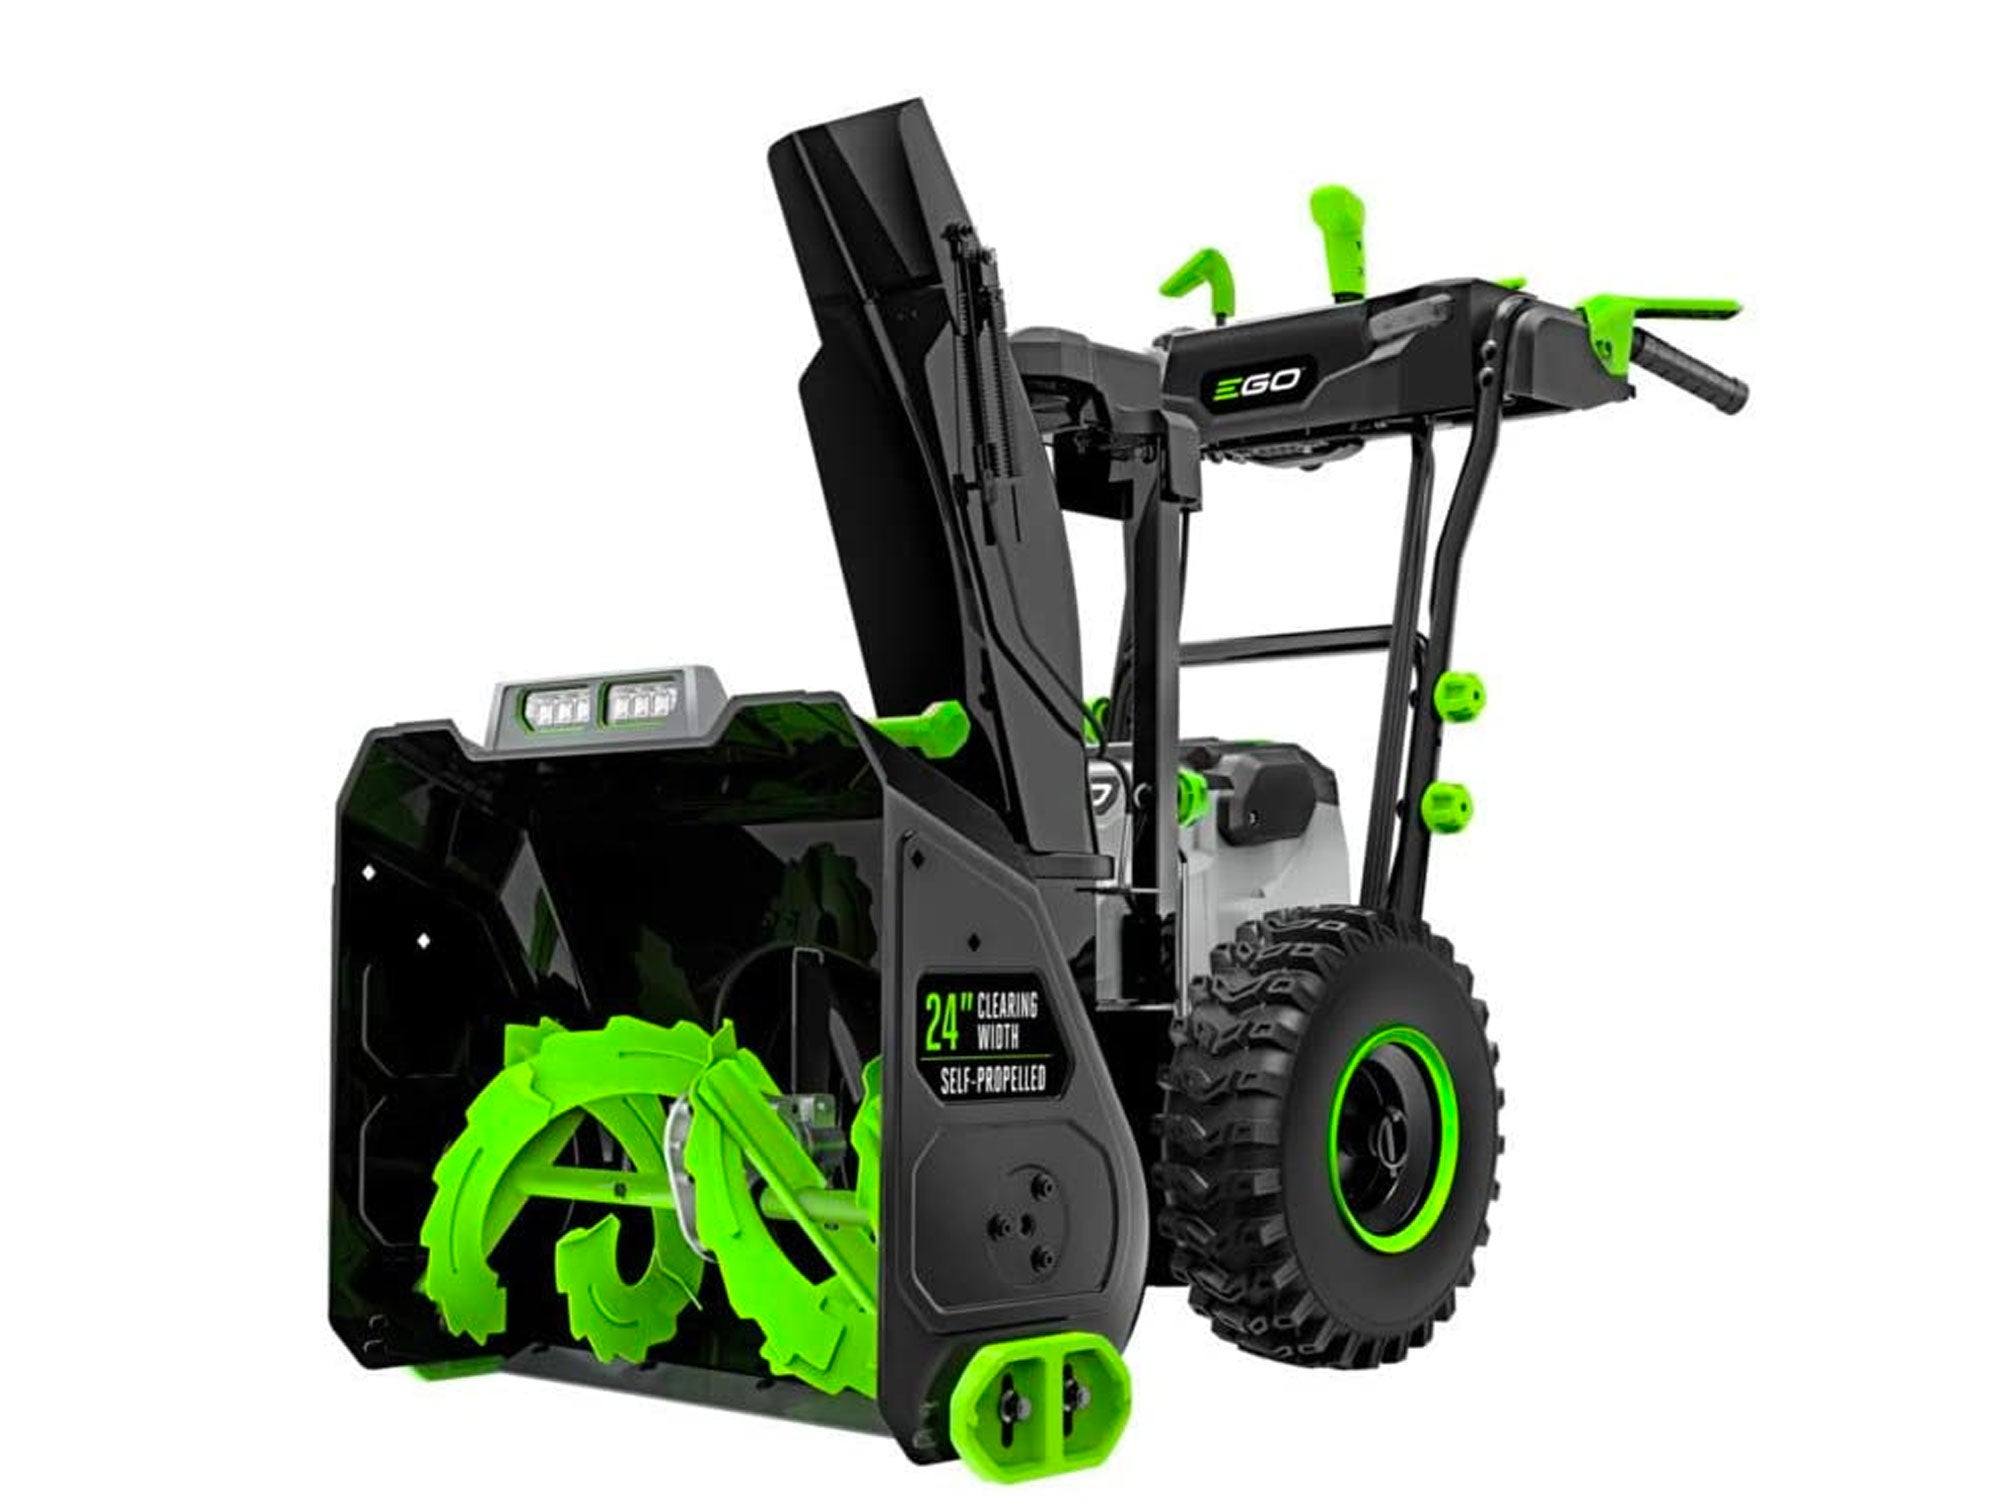 EGO Power+ 24 in. Self-Propelled 2-Stage Snow Blower with Peak Power Battery and Charger Not Included, Black